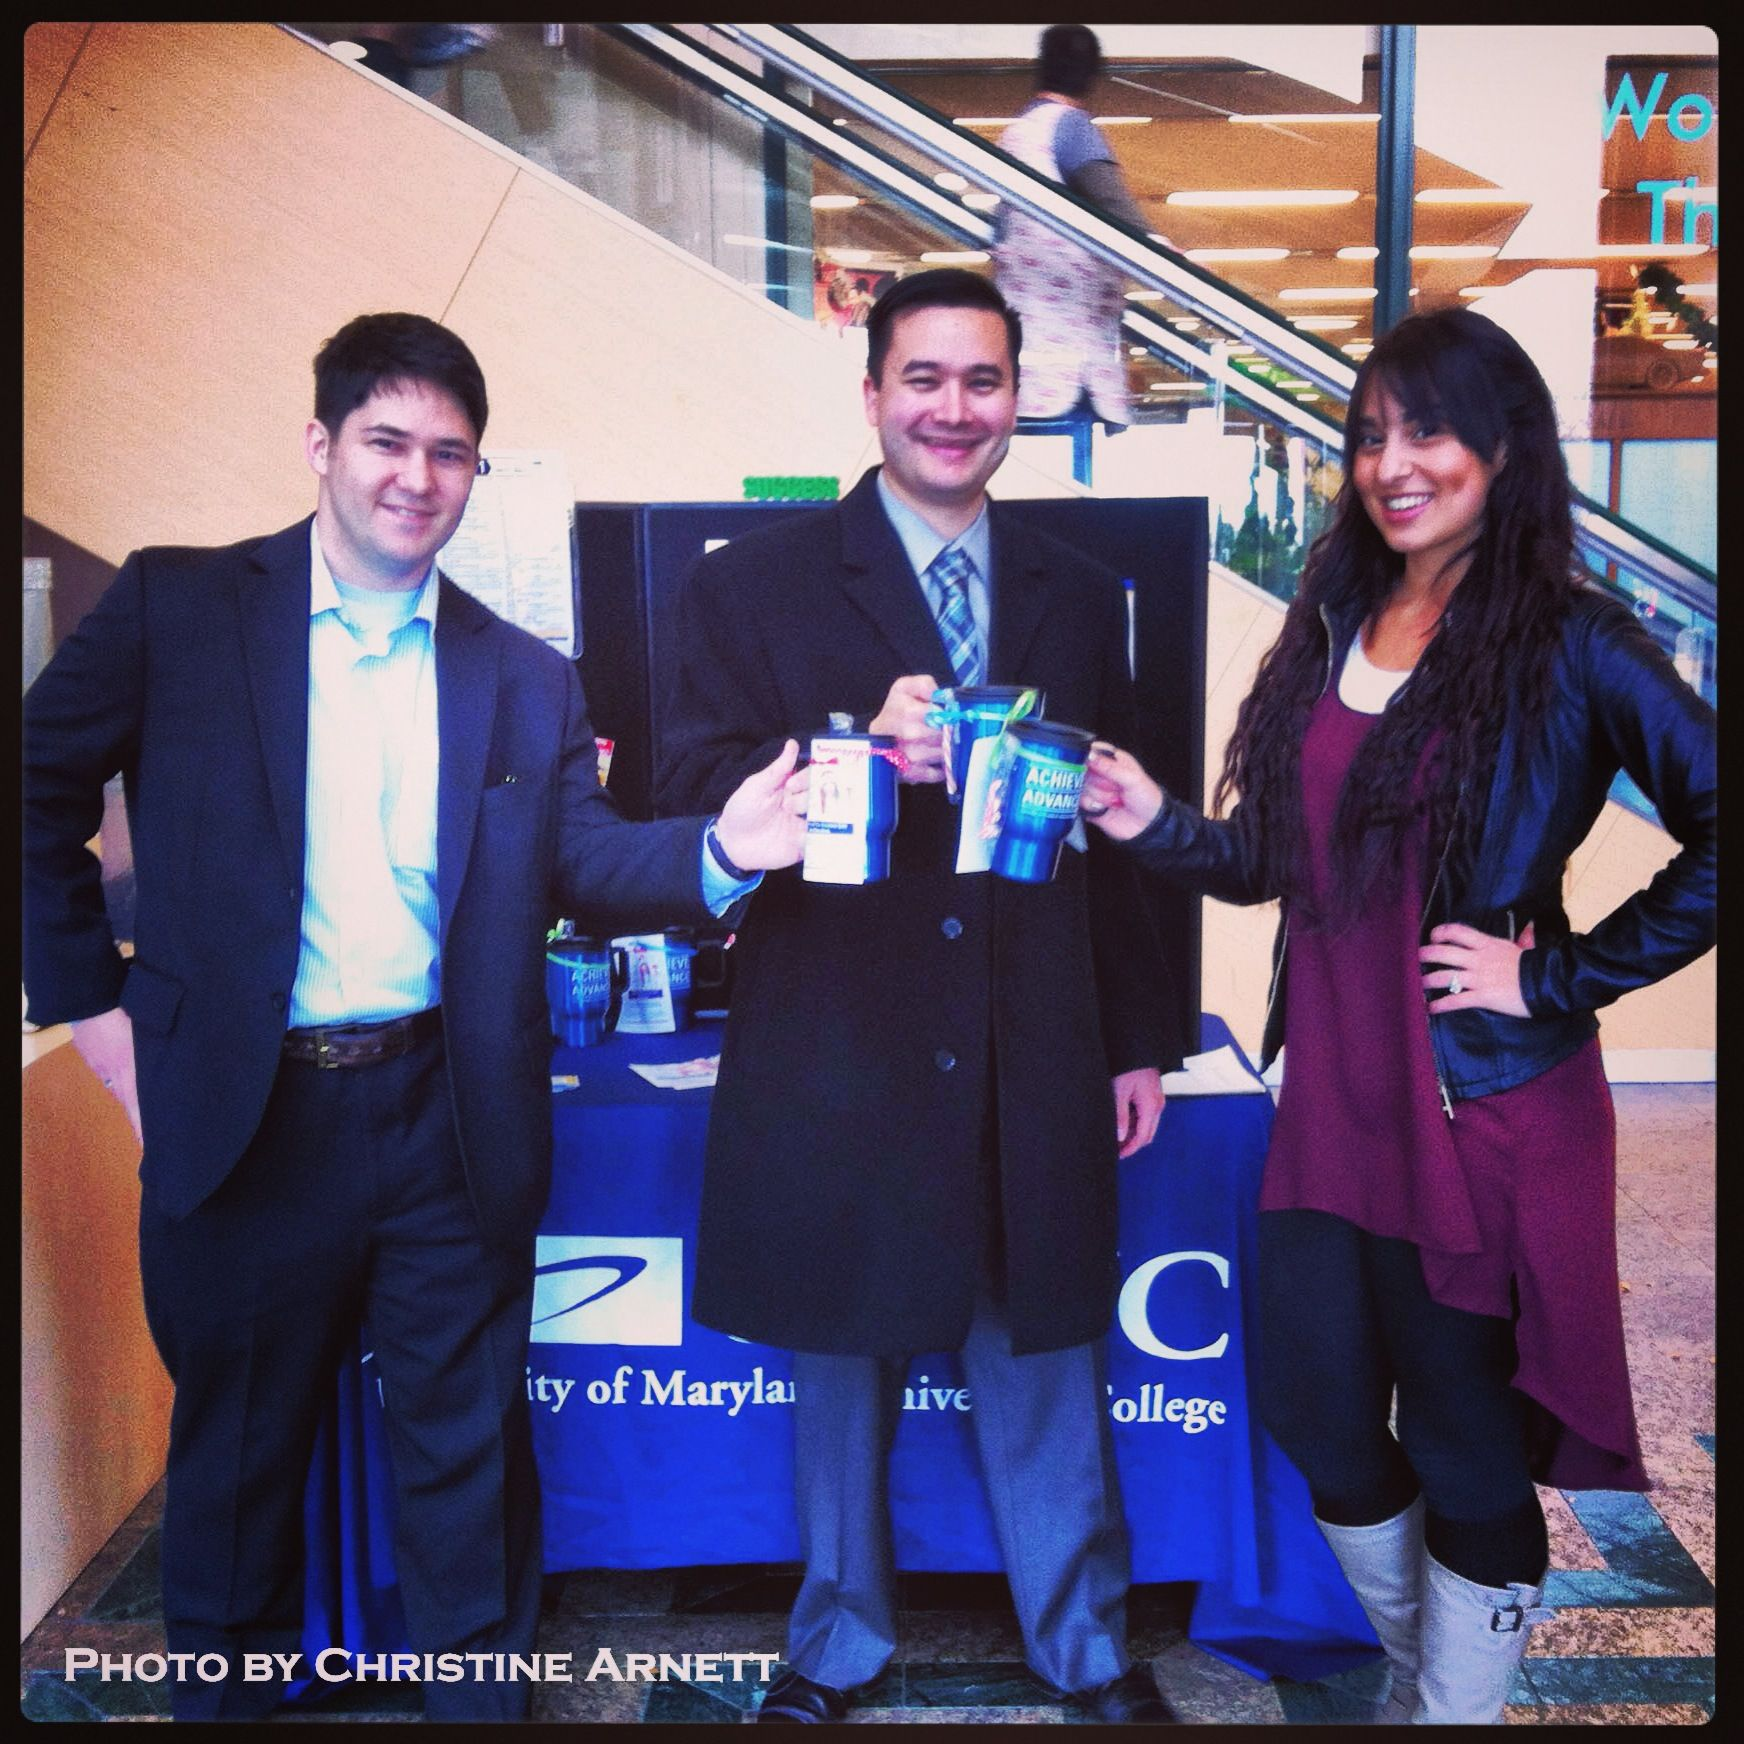 The #UMUC Japan team at the Yokota Community Center ready to help students! #UMUCPhotoOfTheDay